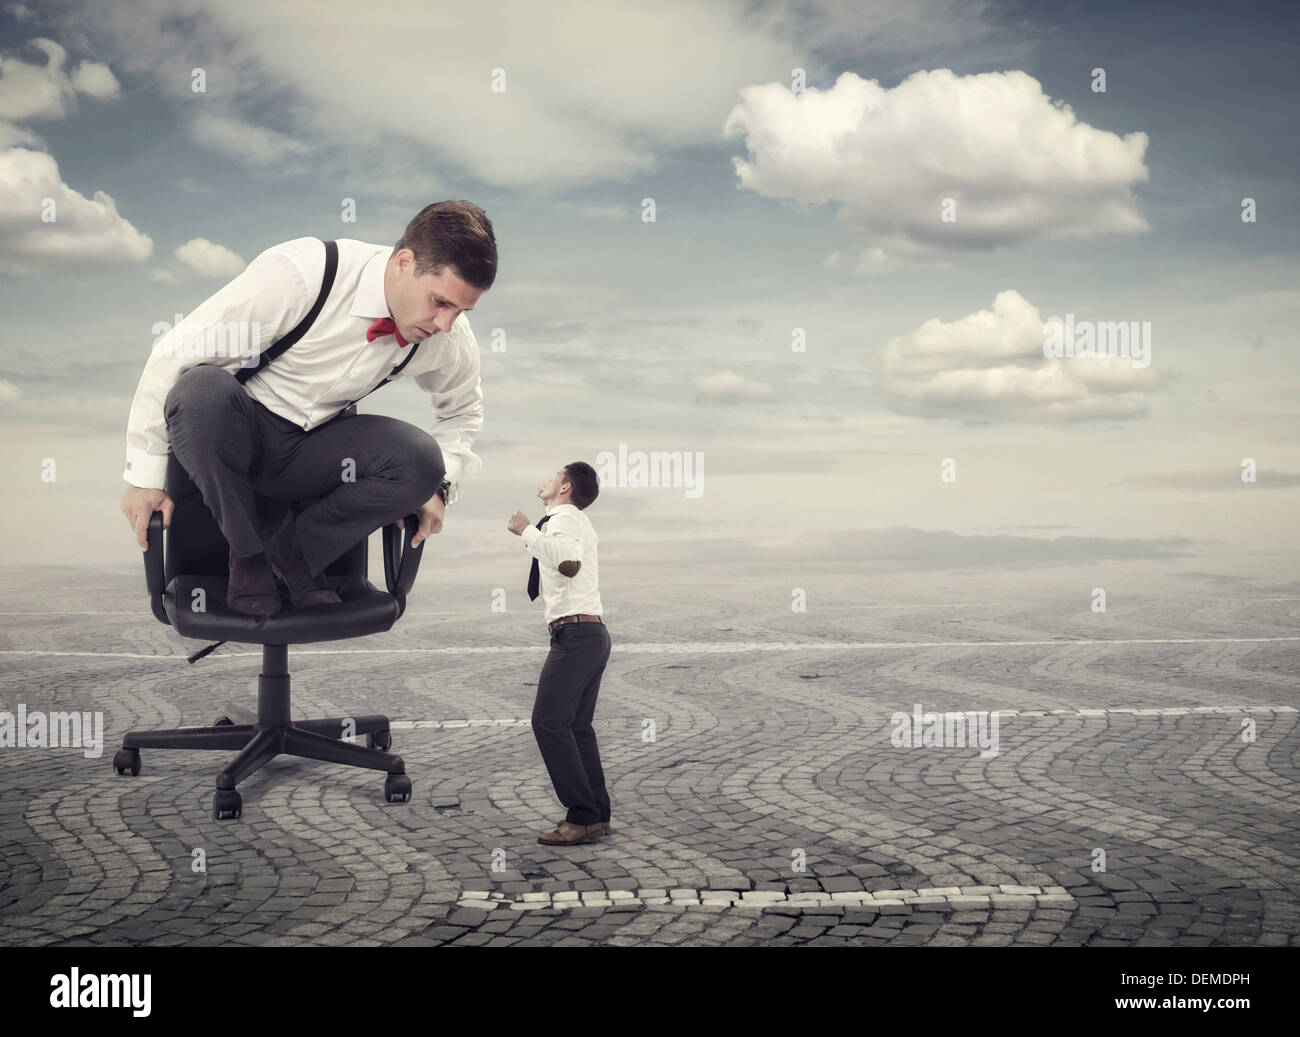 Furious boss yelling at an employee - Stock Image